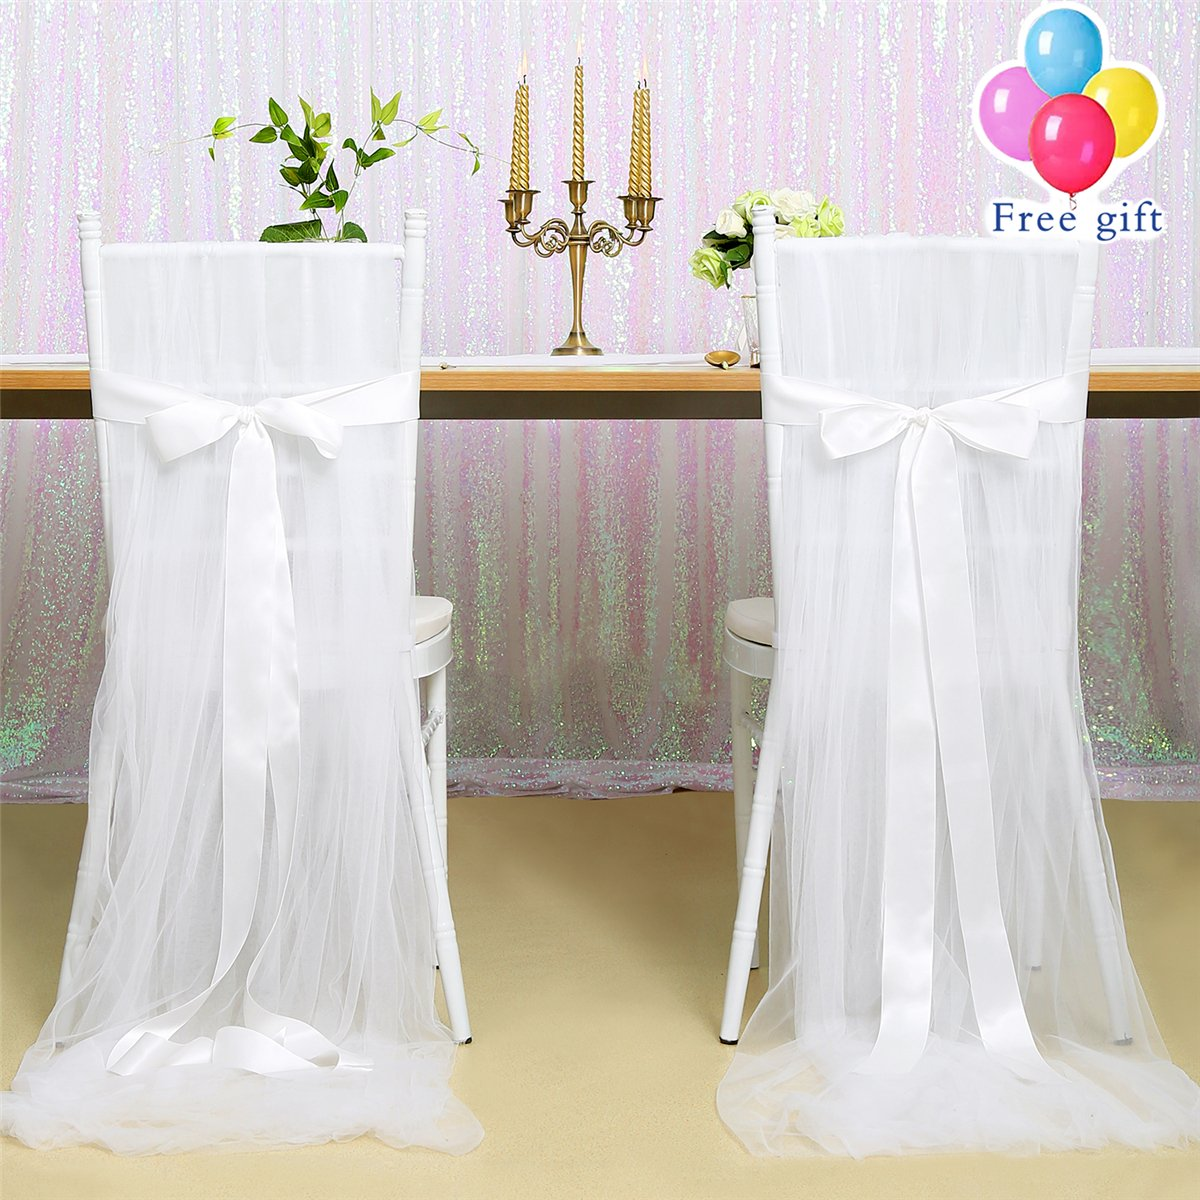 B-COOL White 2pcs Tutu Tulle Chair Skirt 100''x63'' Fluffy Chair Cover Long Tulle High Chair Skirt Slipcovers For Bridal Shower/Home/Party/Outdoor Wedding Decoration